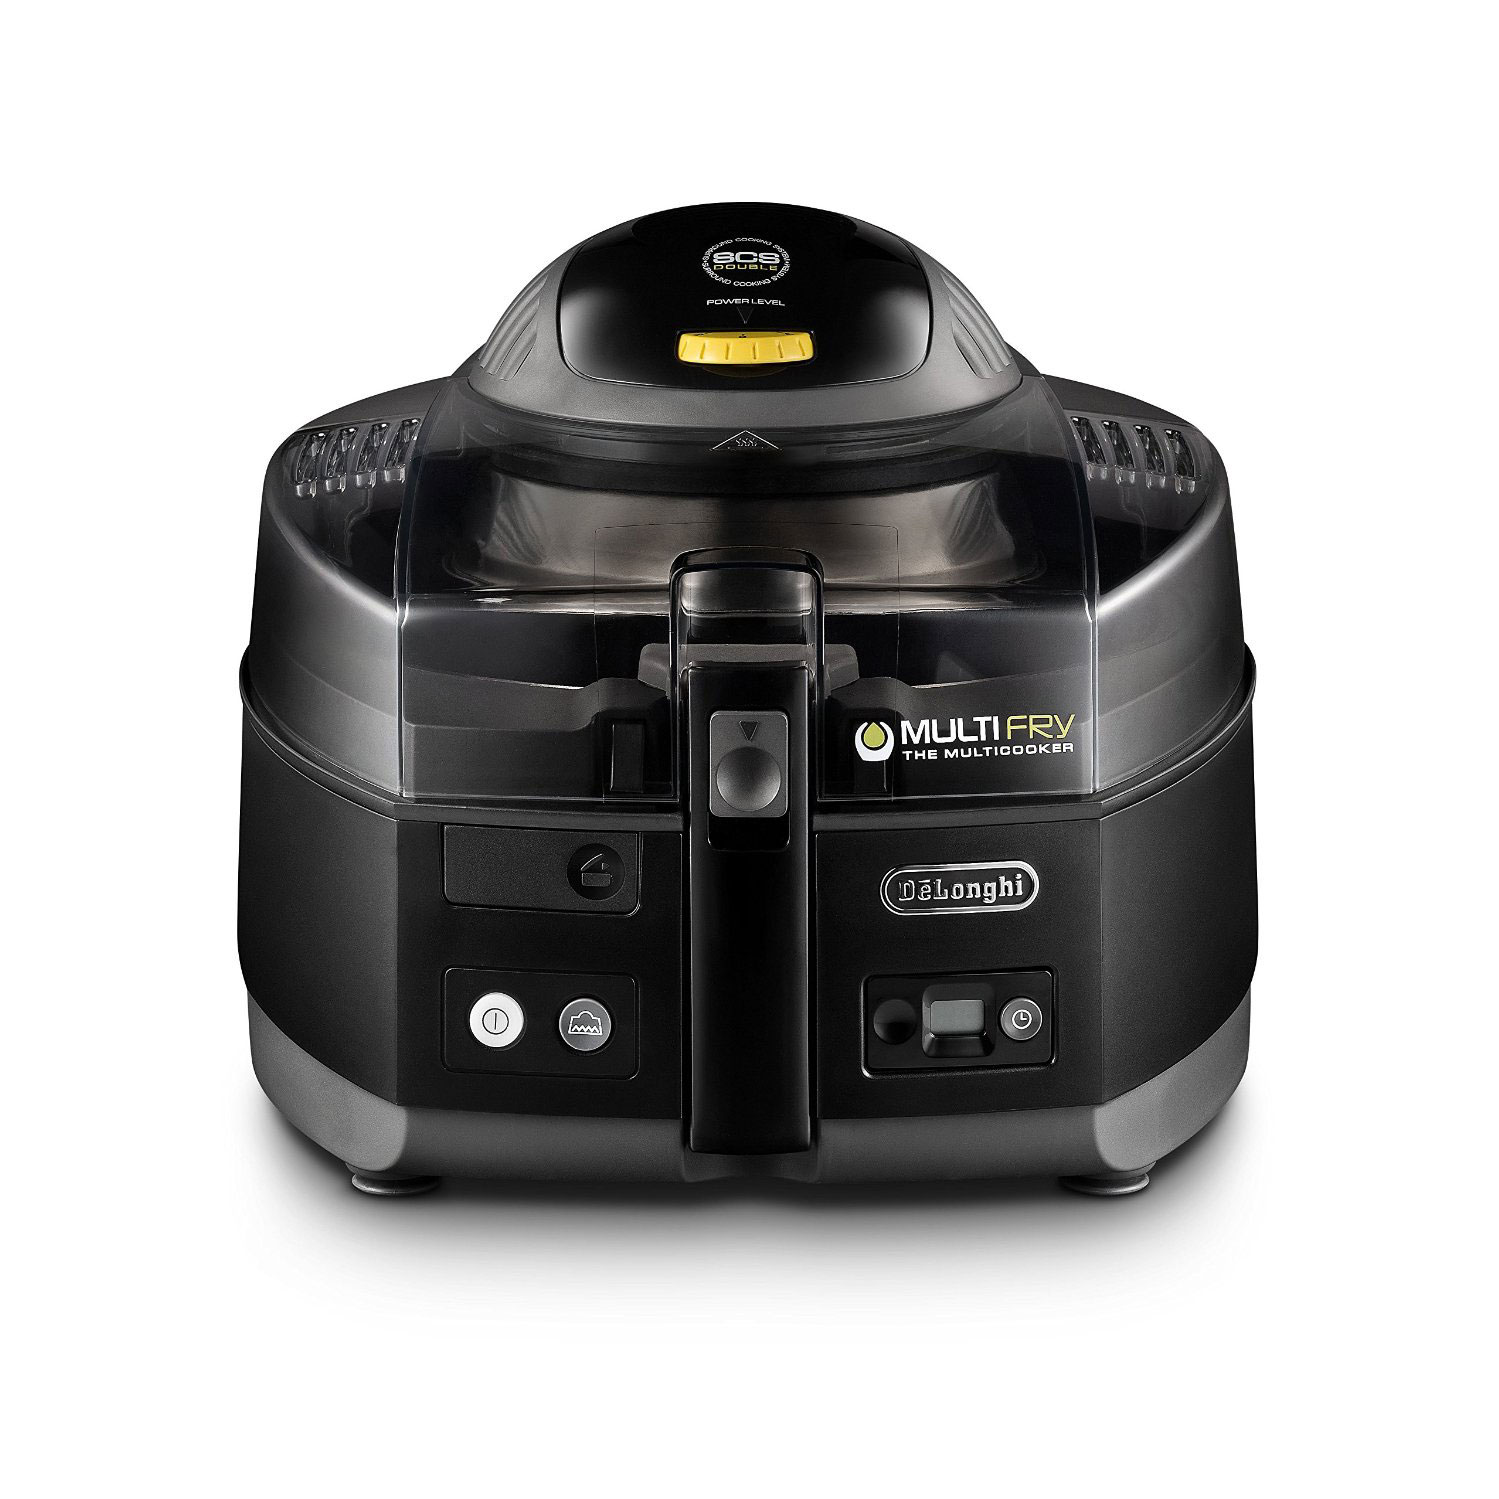 Delonghi FH1163 MultiFry, Low Oil Fryer and Multi Cooker,...